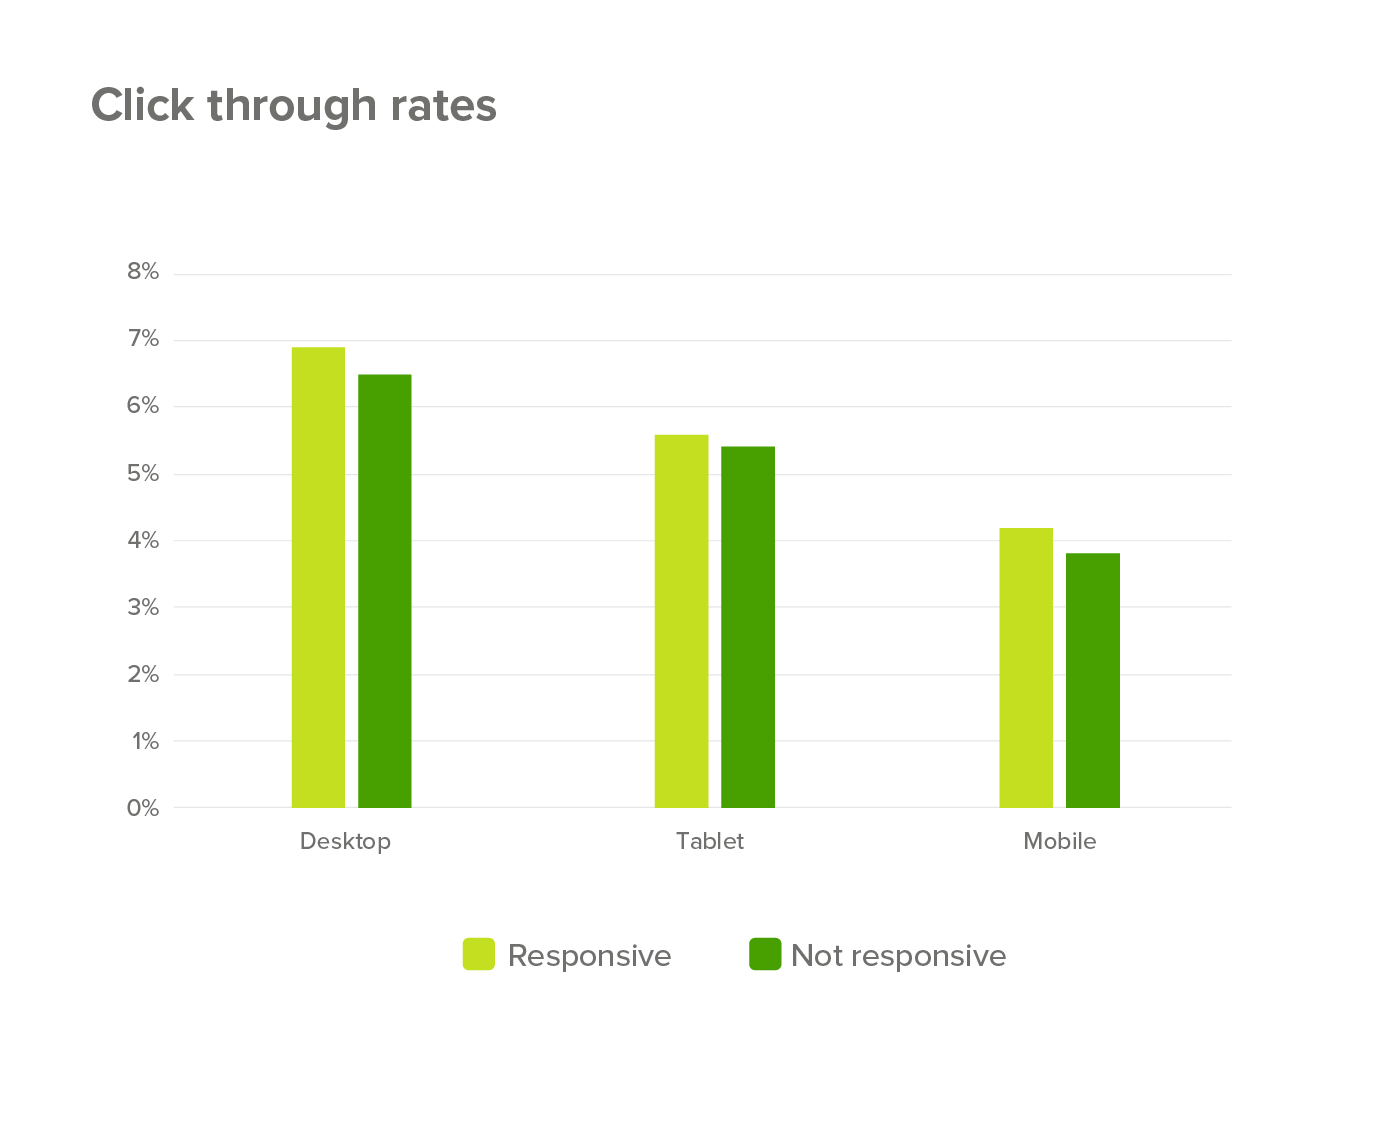 Click through rates by responsive design